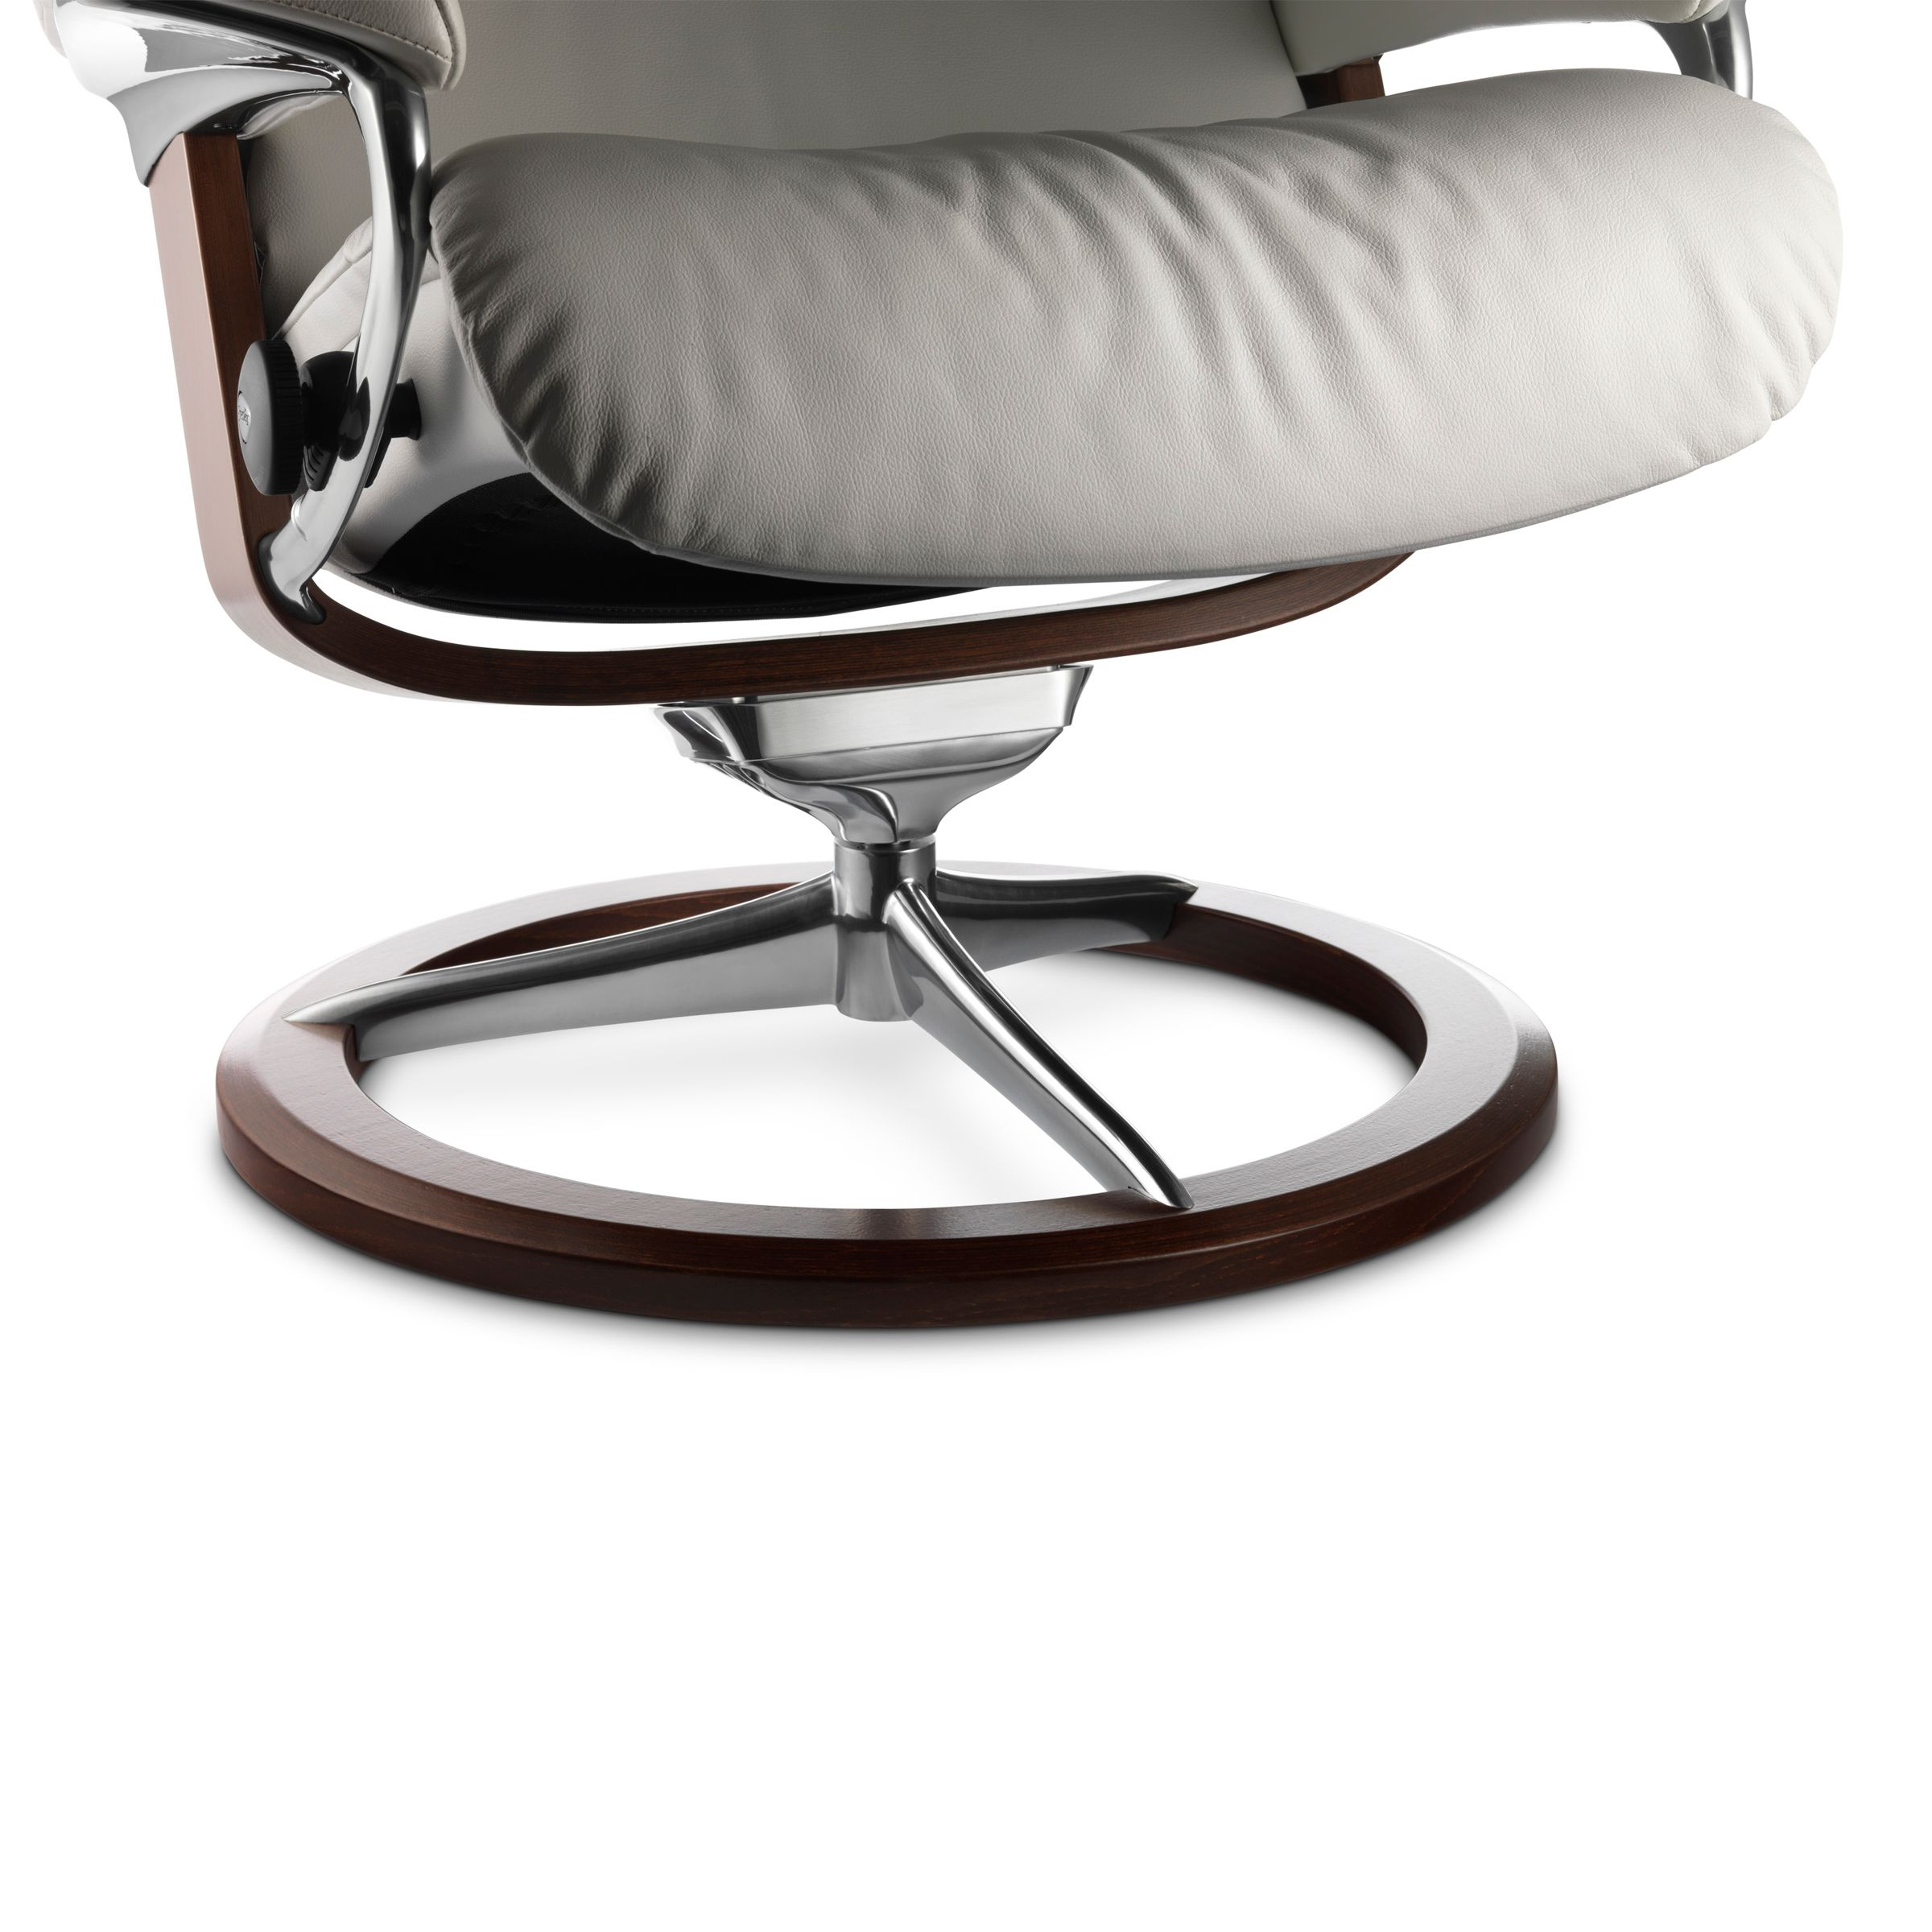 Stressless Sessel Mit Hocker Erhöhungsset Sessel Hocker Signature Gestell Stressless